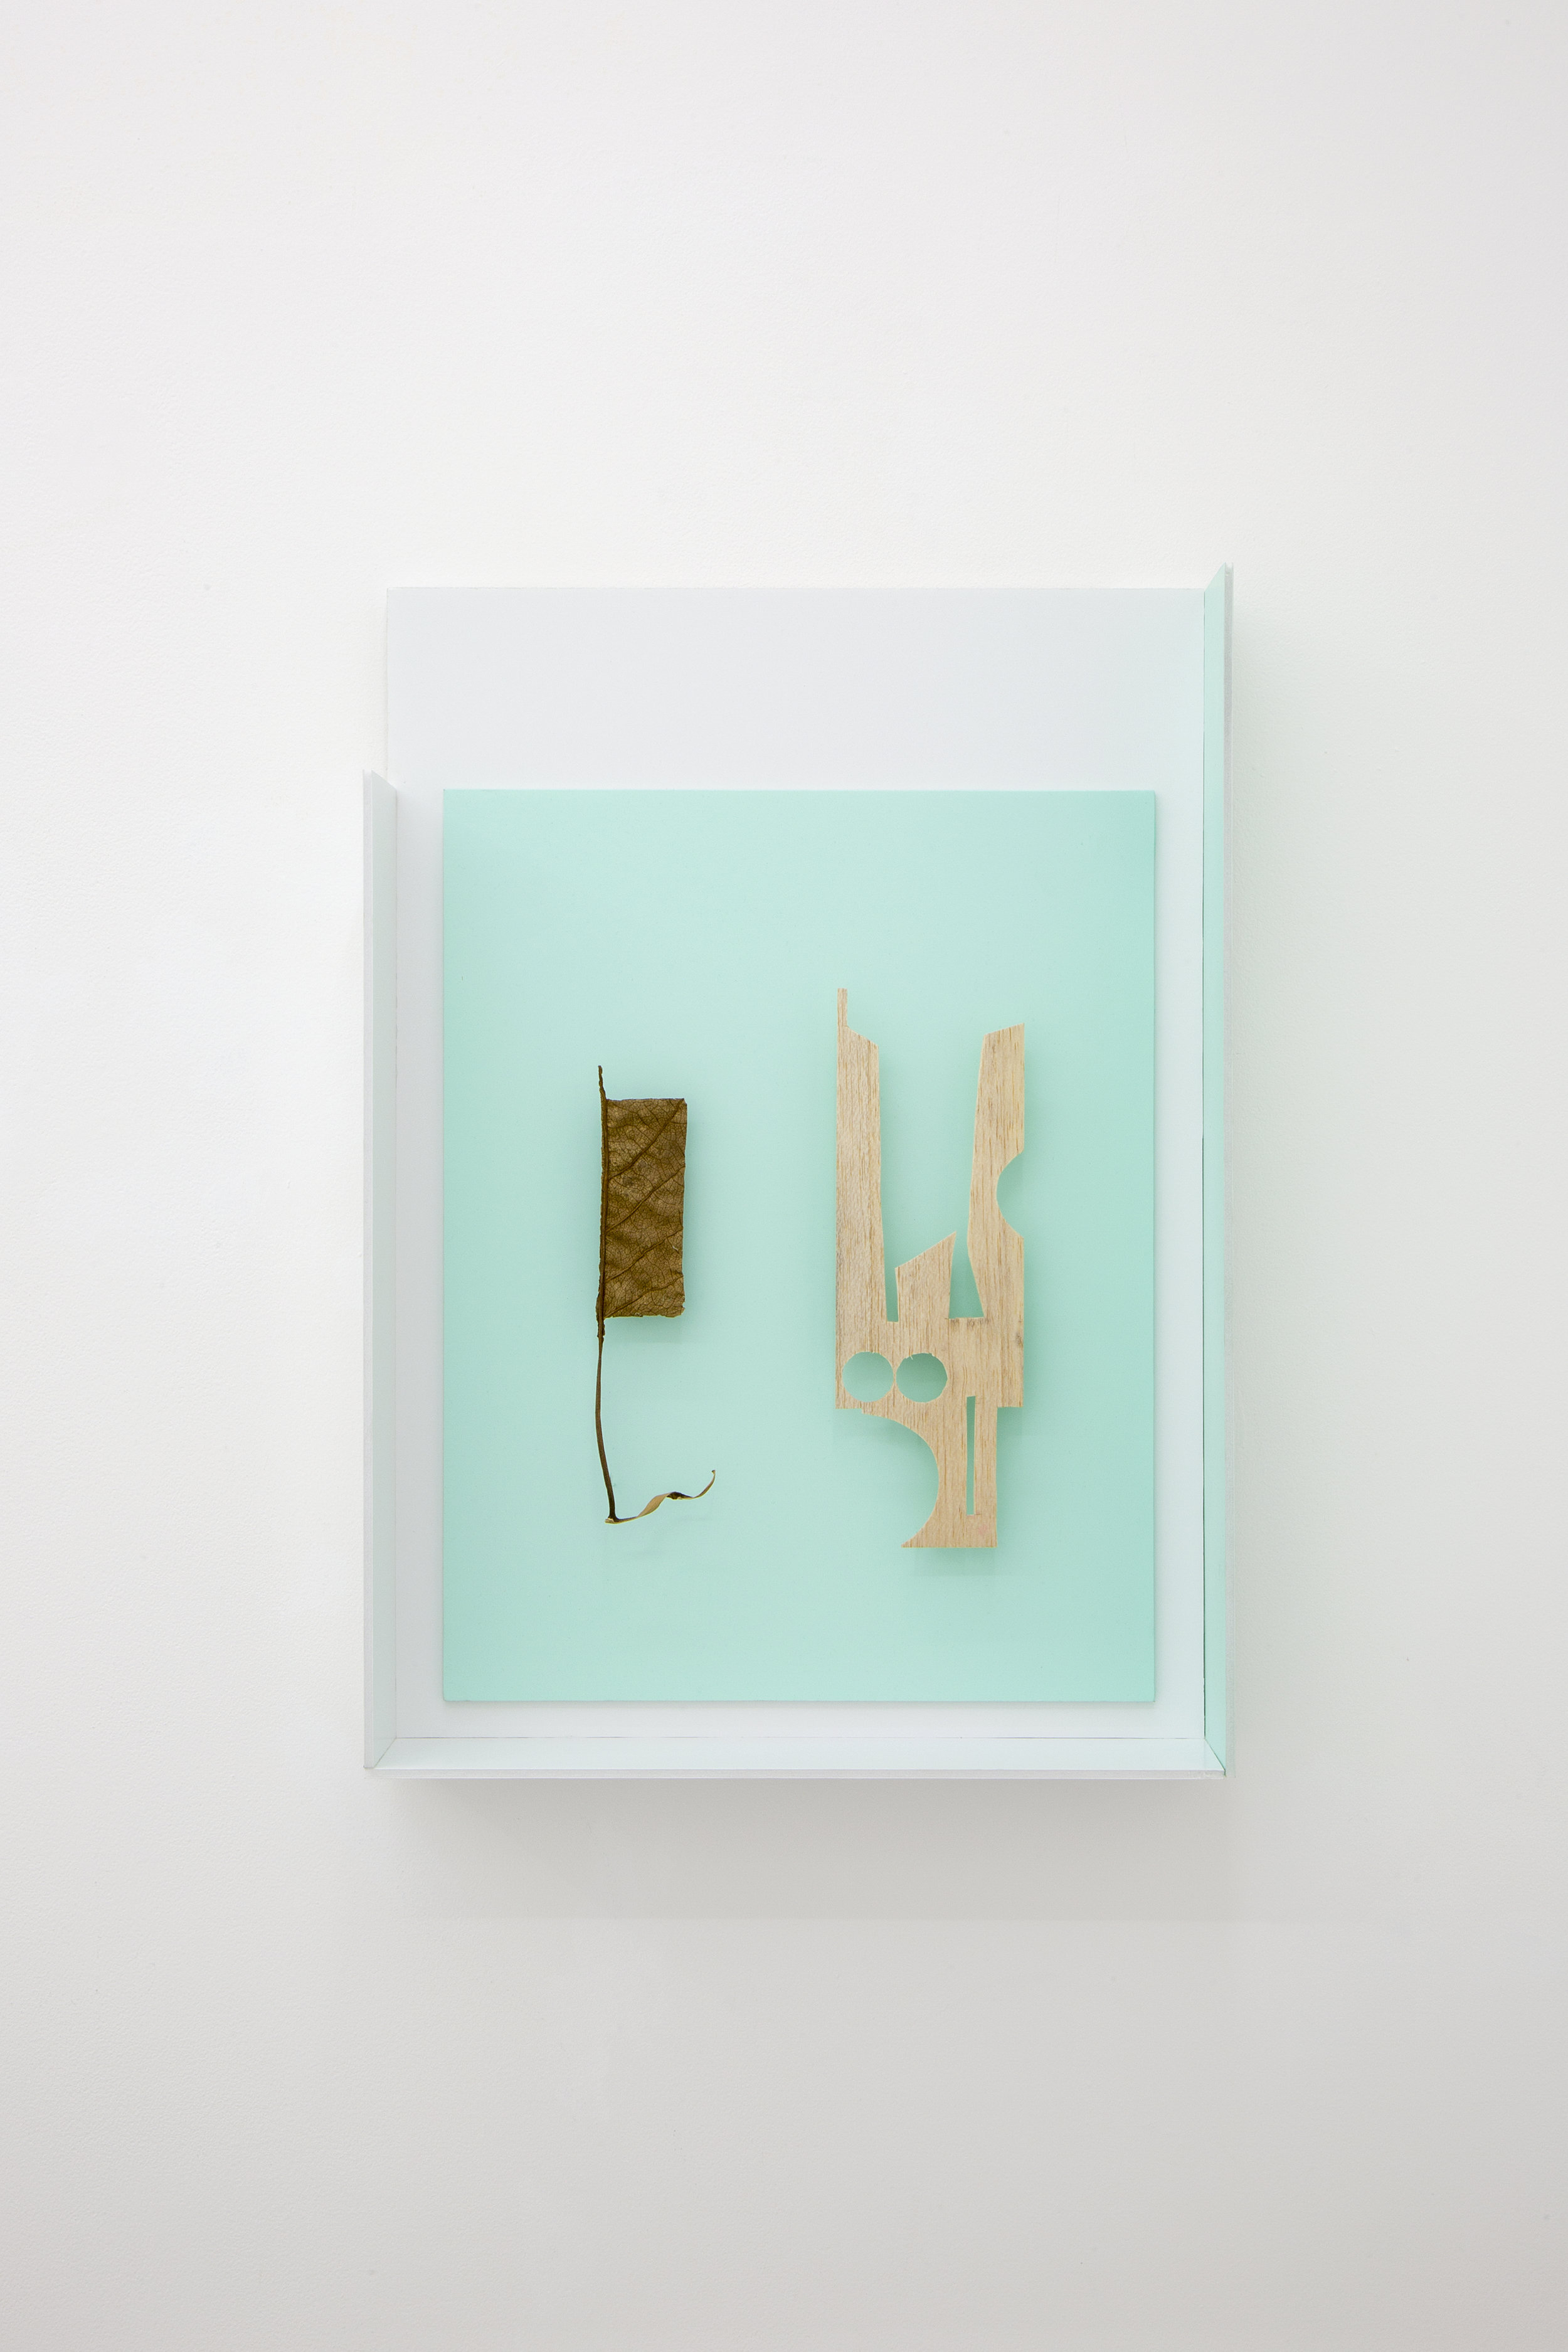 Christian Camacho, La práctica de las decisiones (the practice of choices), 2018.  foamboard, lacquer, balsa wood, dried and sealed leaf, adhesives, steel pins 45.4X63.5X10 cm 17.87X25X3.93 inch